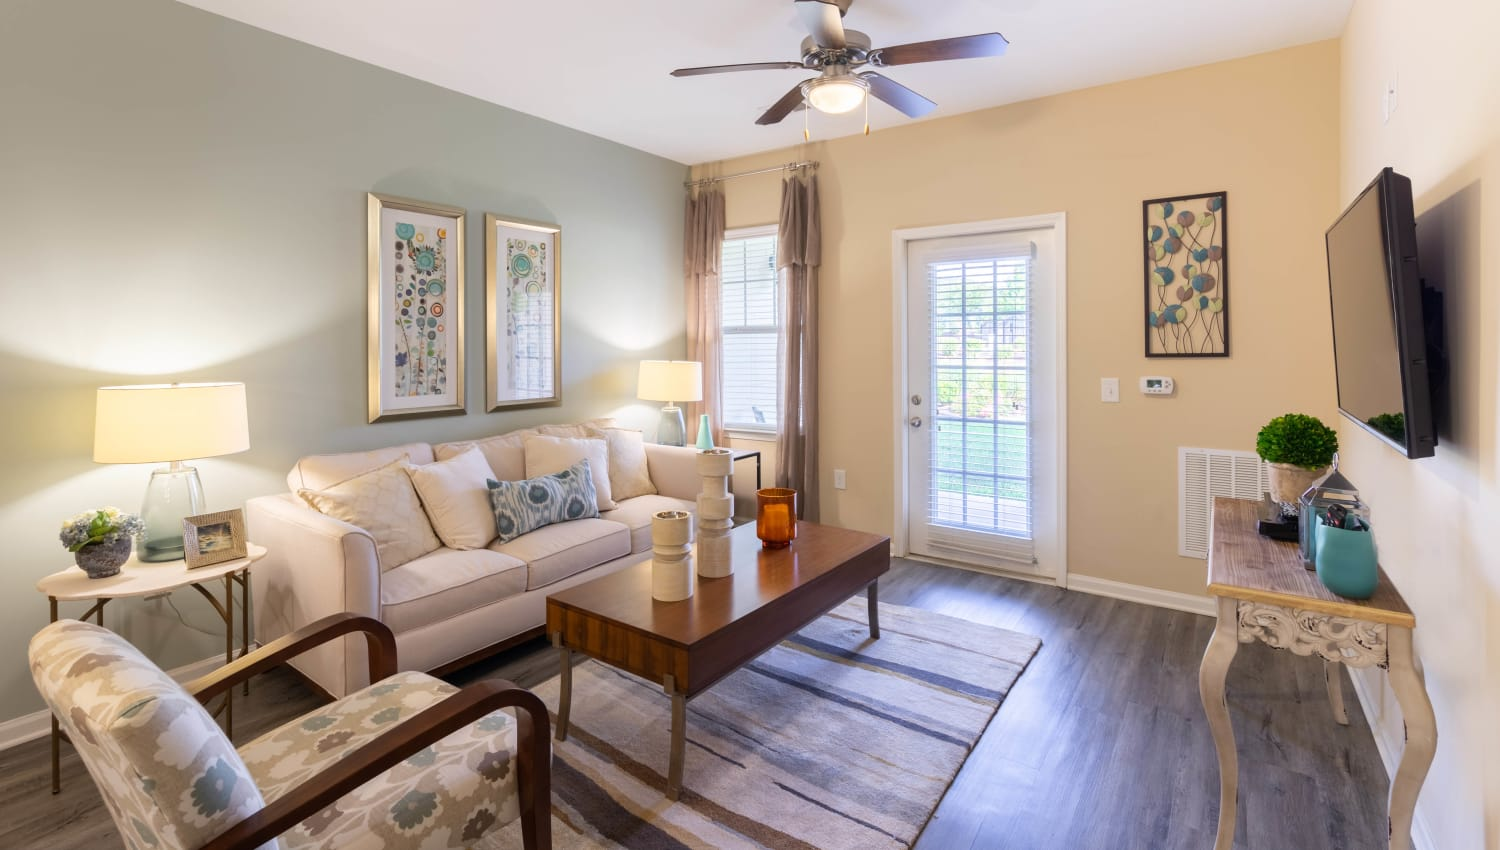 Model home's living space with an accent wall and hardwood floors at Legends at White Oak in Ooltewah, Tennessee